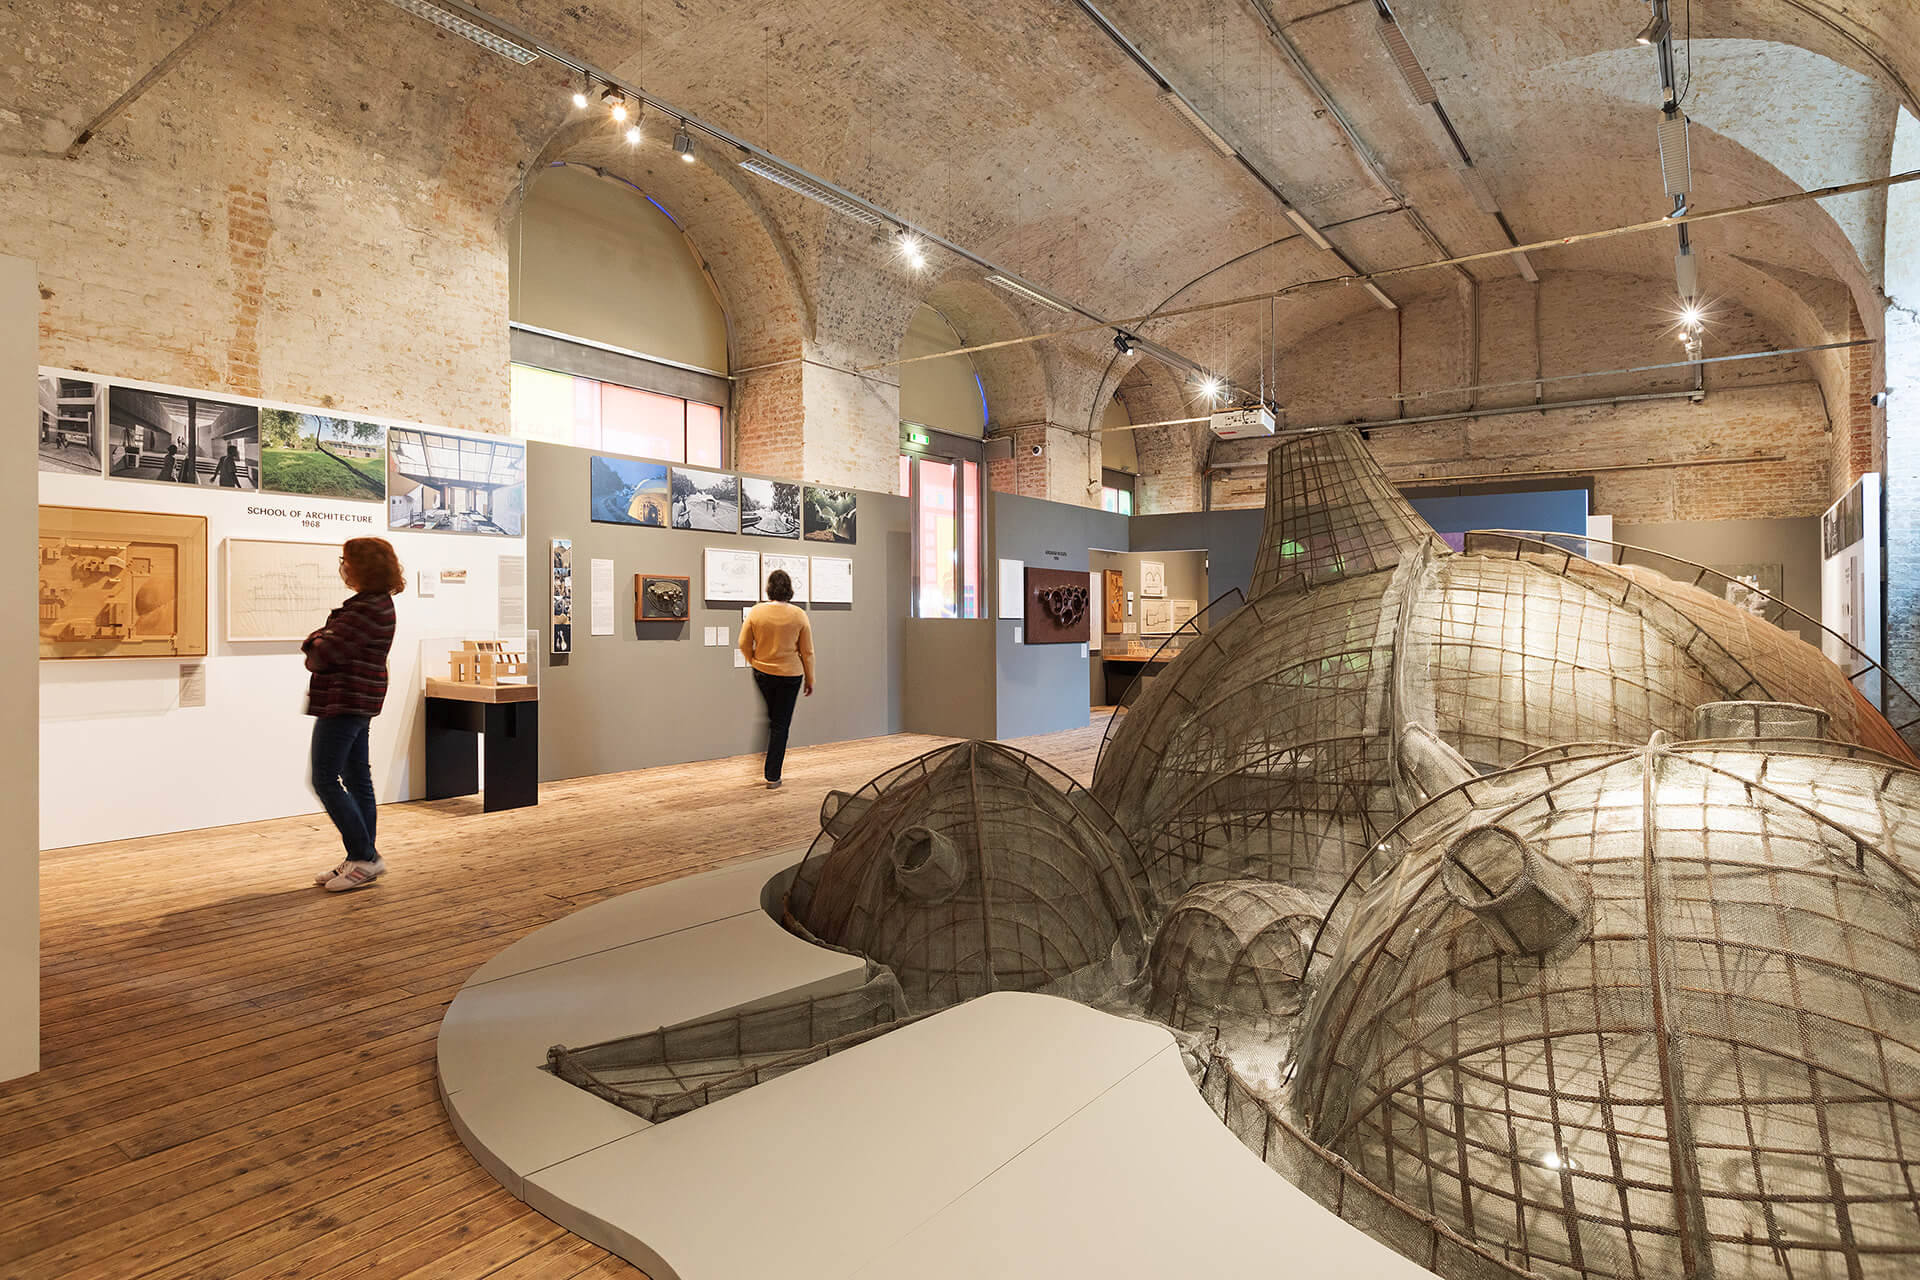 'Balkrishna Doshi: Architecture for the People' exhibited at Architekturzentrum Wien, Austria | BV Doshi | STIRworld